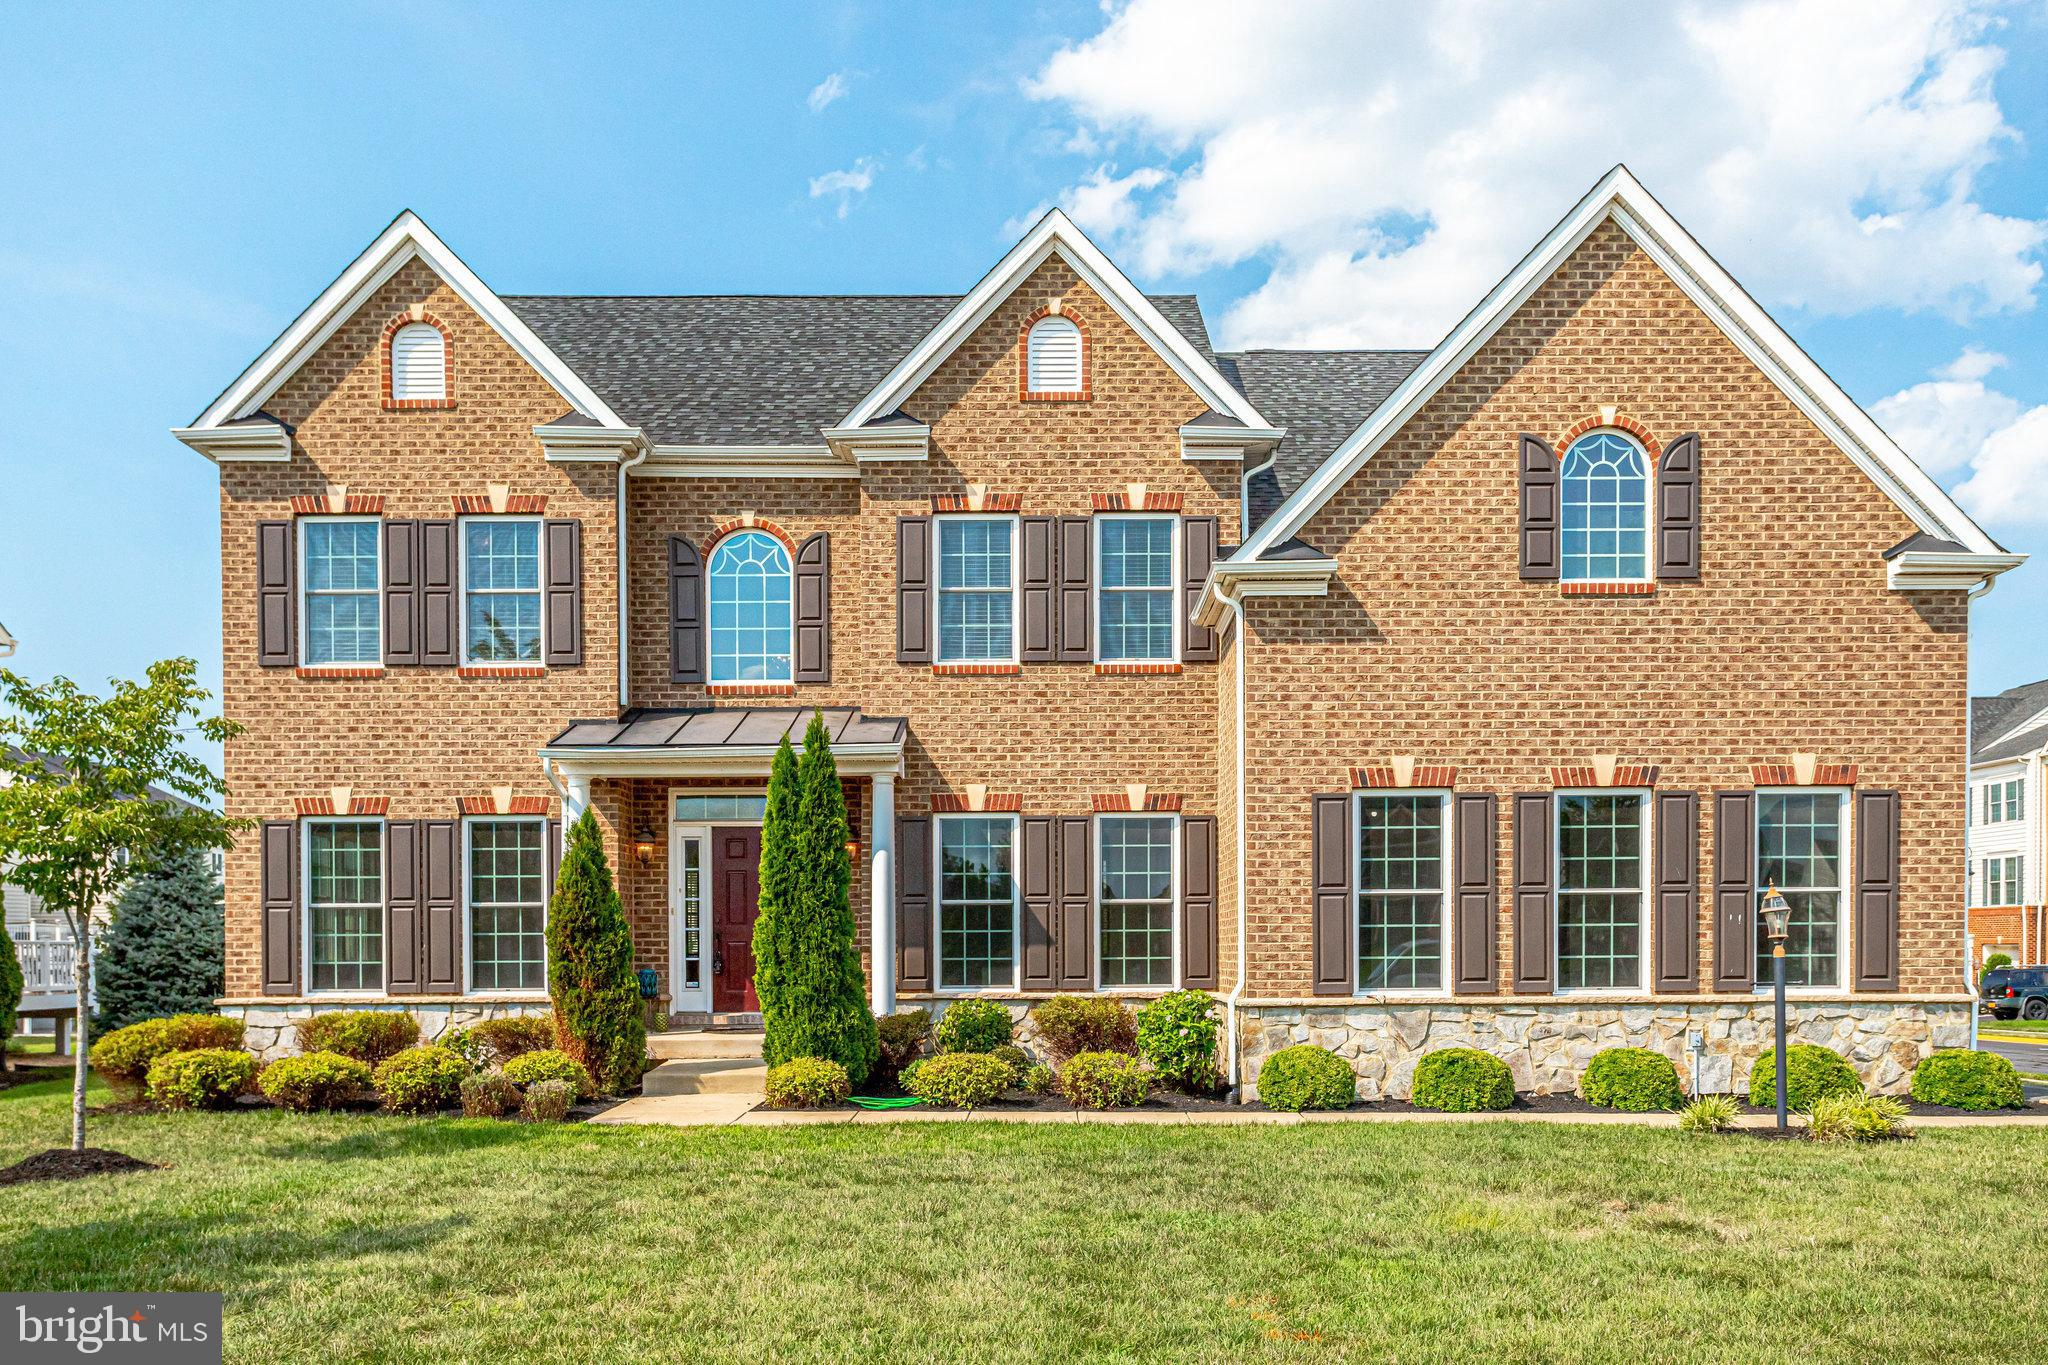 Welcome home to this Remington model by NVR Homes. Situated on a corner lot with over 5,700 sq. ft.